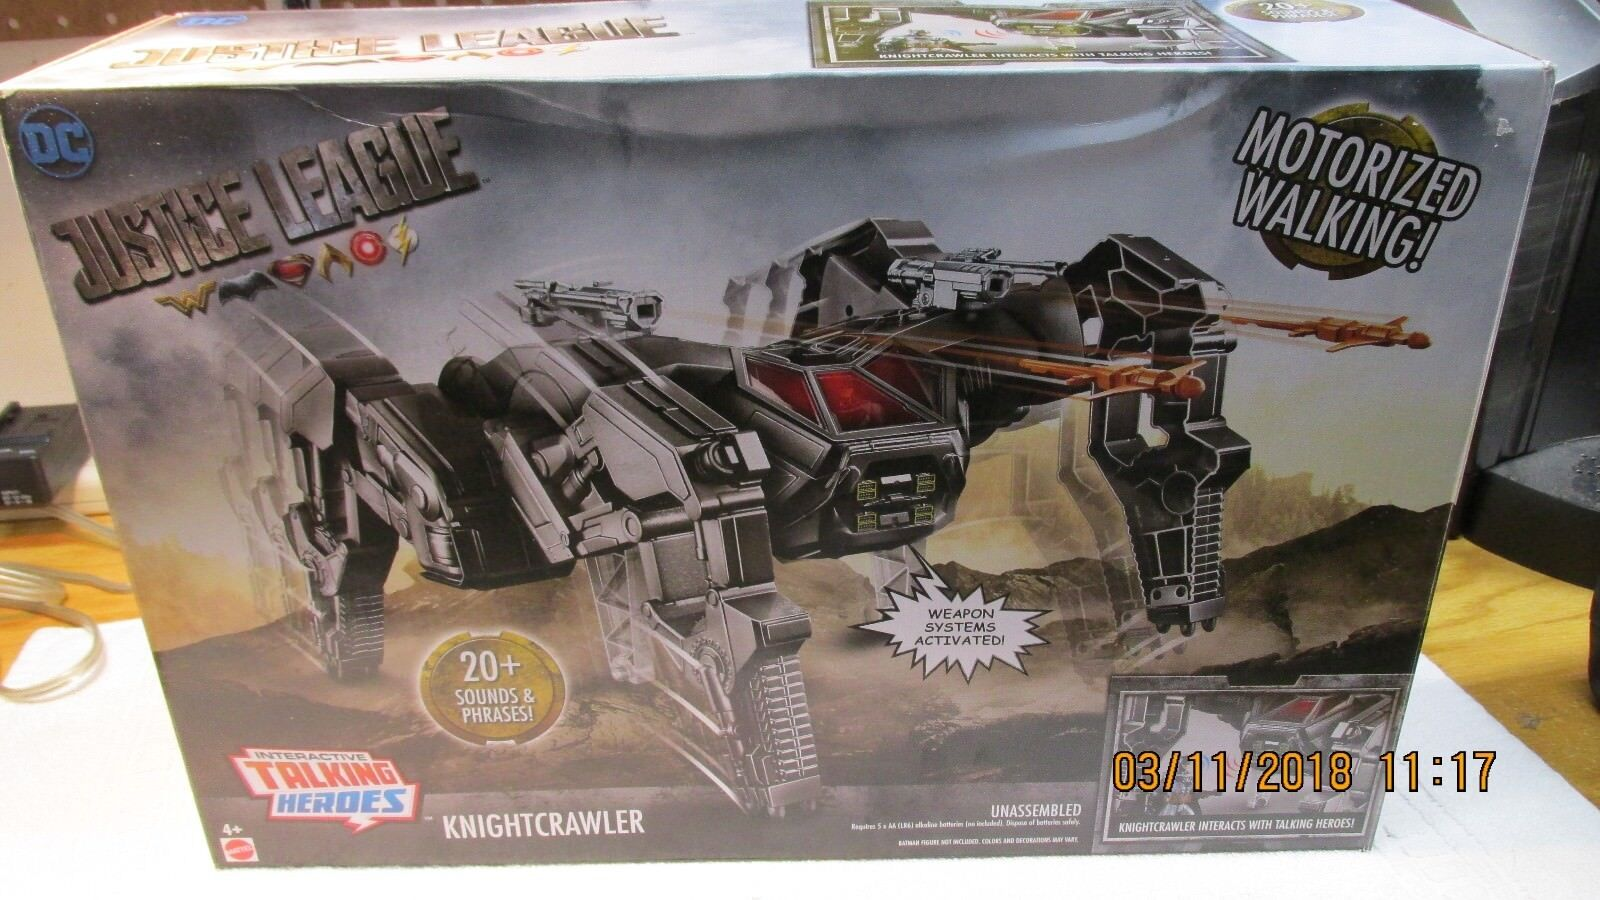 DC Justice League Talking Heroes Knightcrawler Vehicle NEW TALKING HEROES